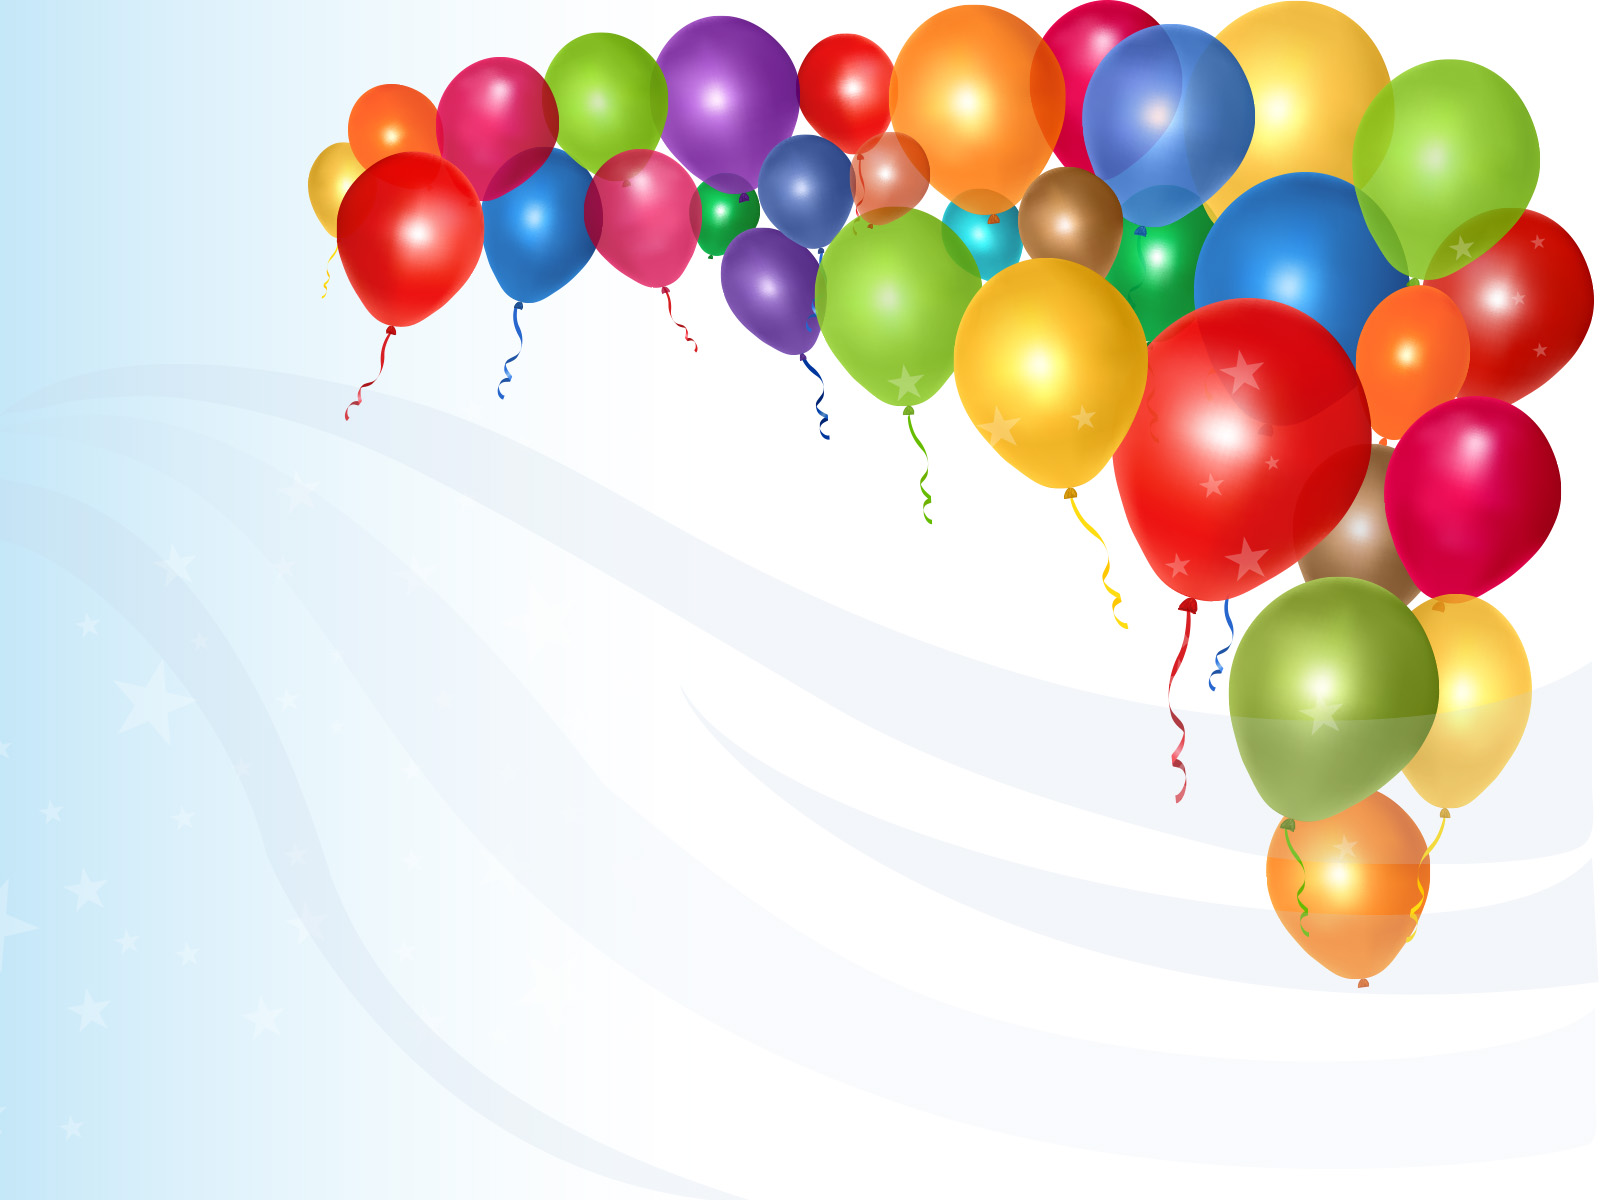 Shiny Colorful Balloons Backgrounds - Blue, Design, Green, Holiday ...